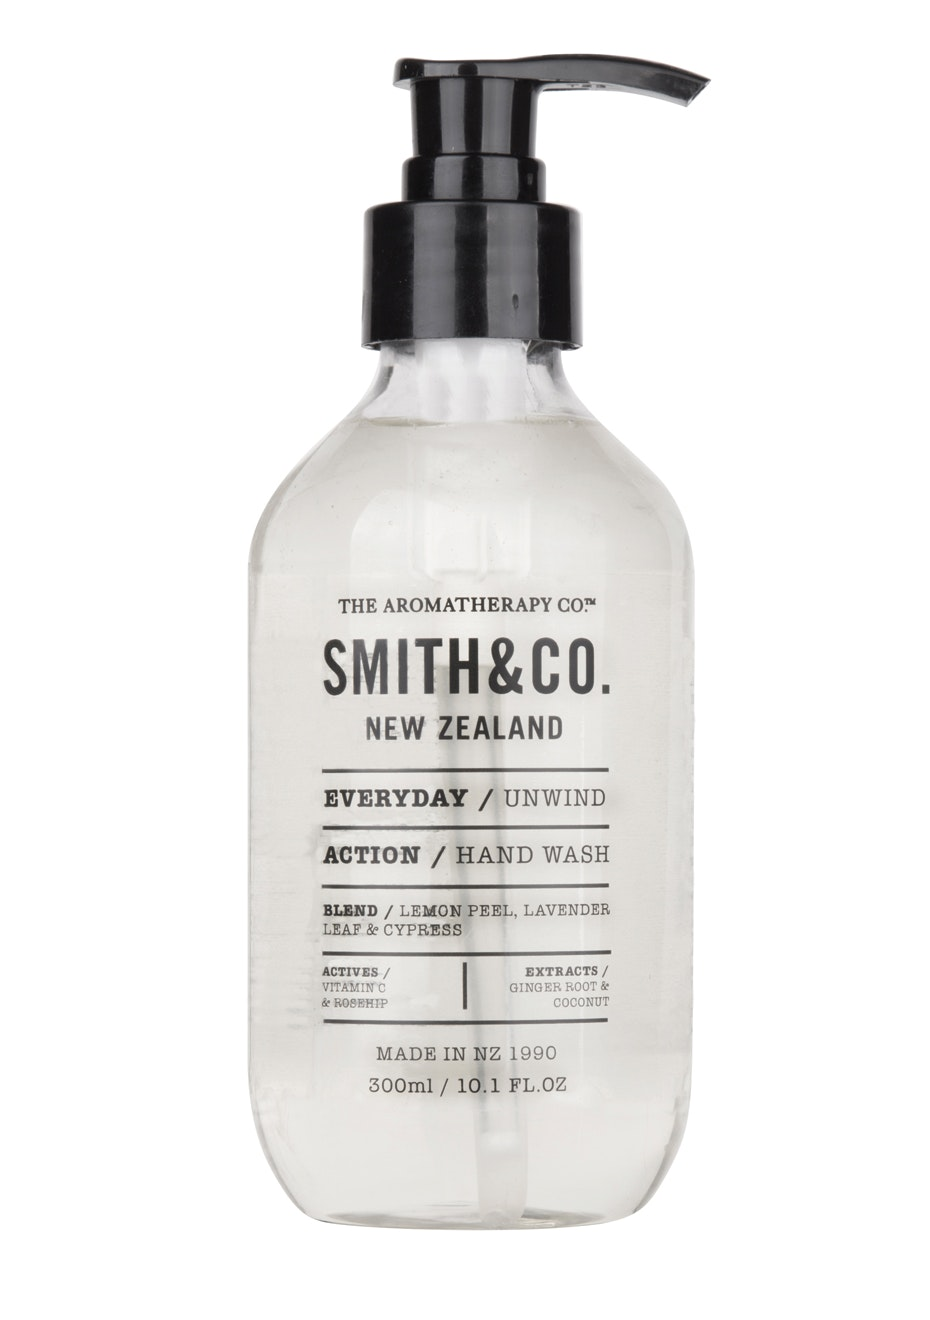 The Aromatherapy Co.  Smith & Co. Hand Wash - Unwind